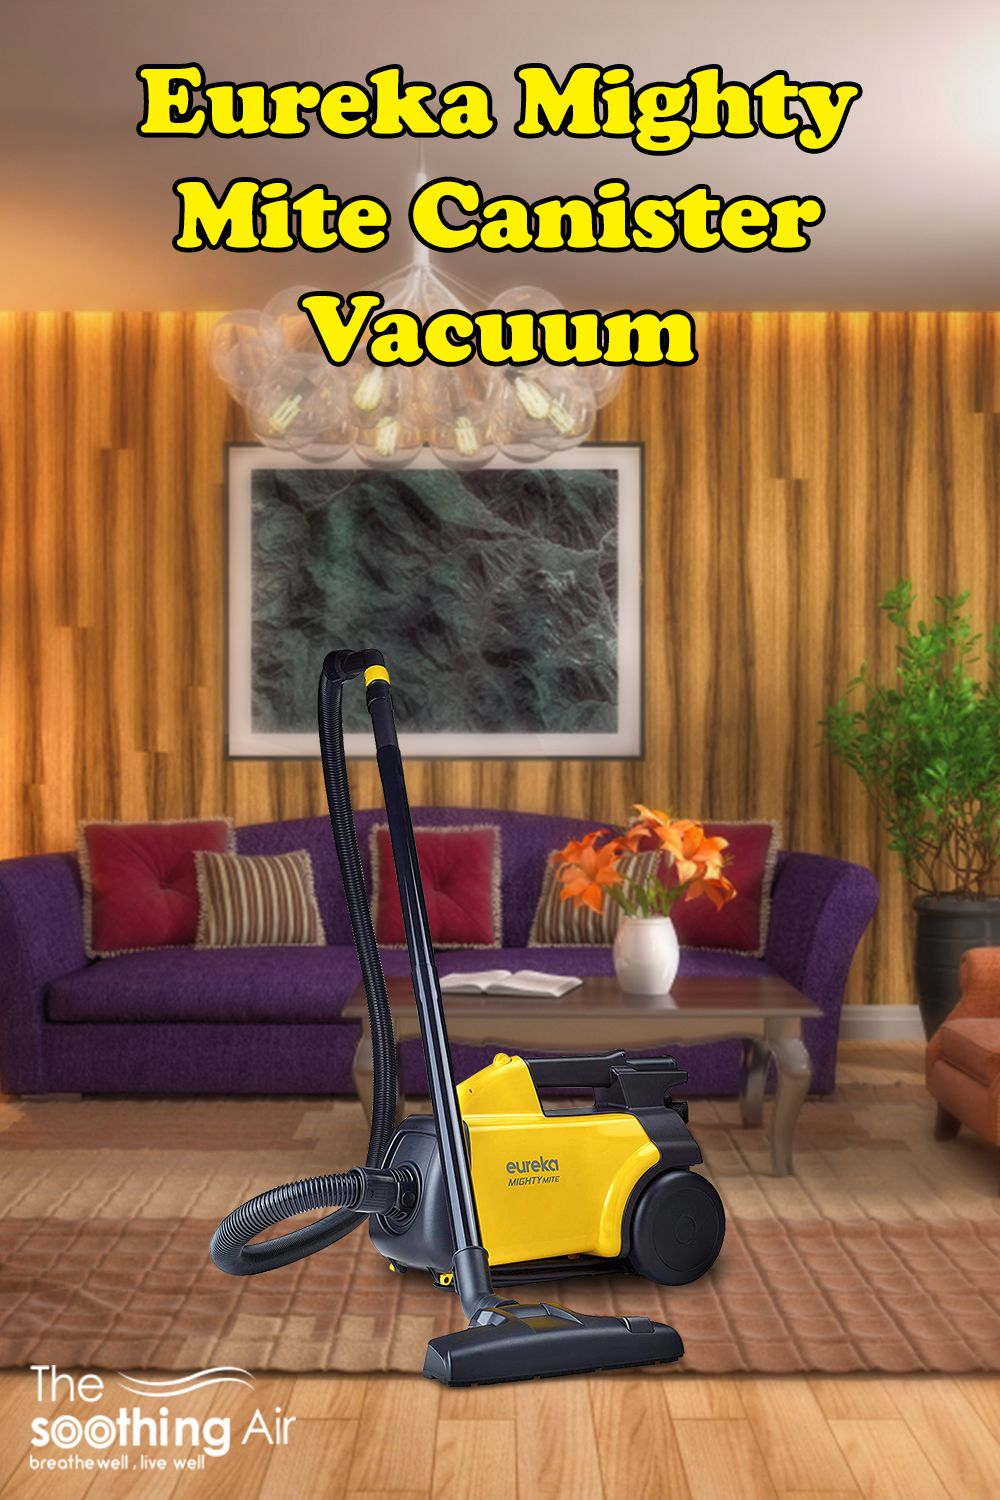 Top 10 Lightweight Vacuums For Pet Hair Feb 2020 Reviews Buyers Guide With Images Pet Hair Vacuum Cleaner Best Pet Hair Vacuum Pet Hair Vacuum